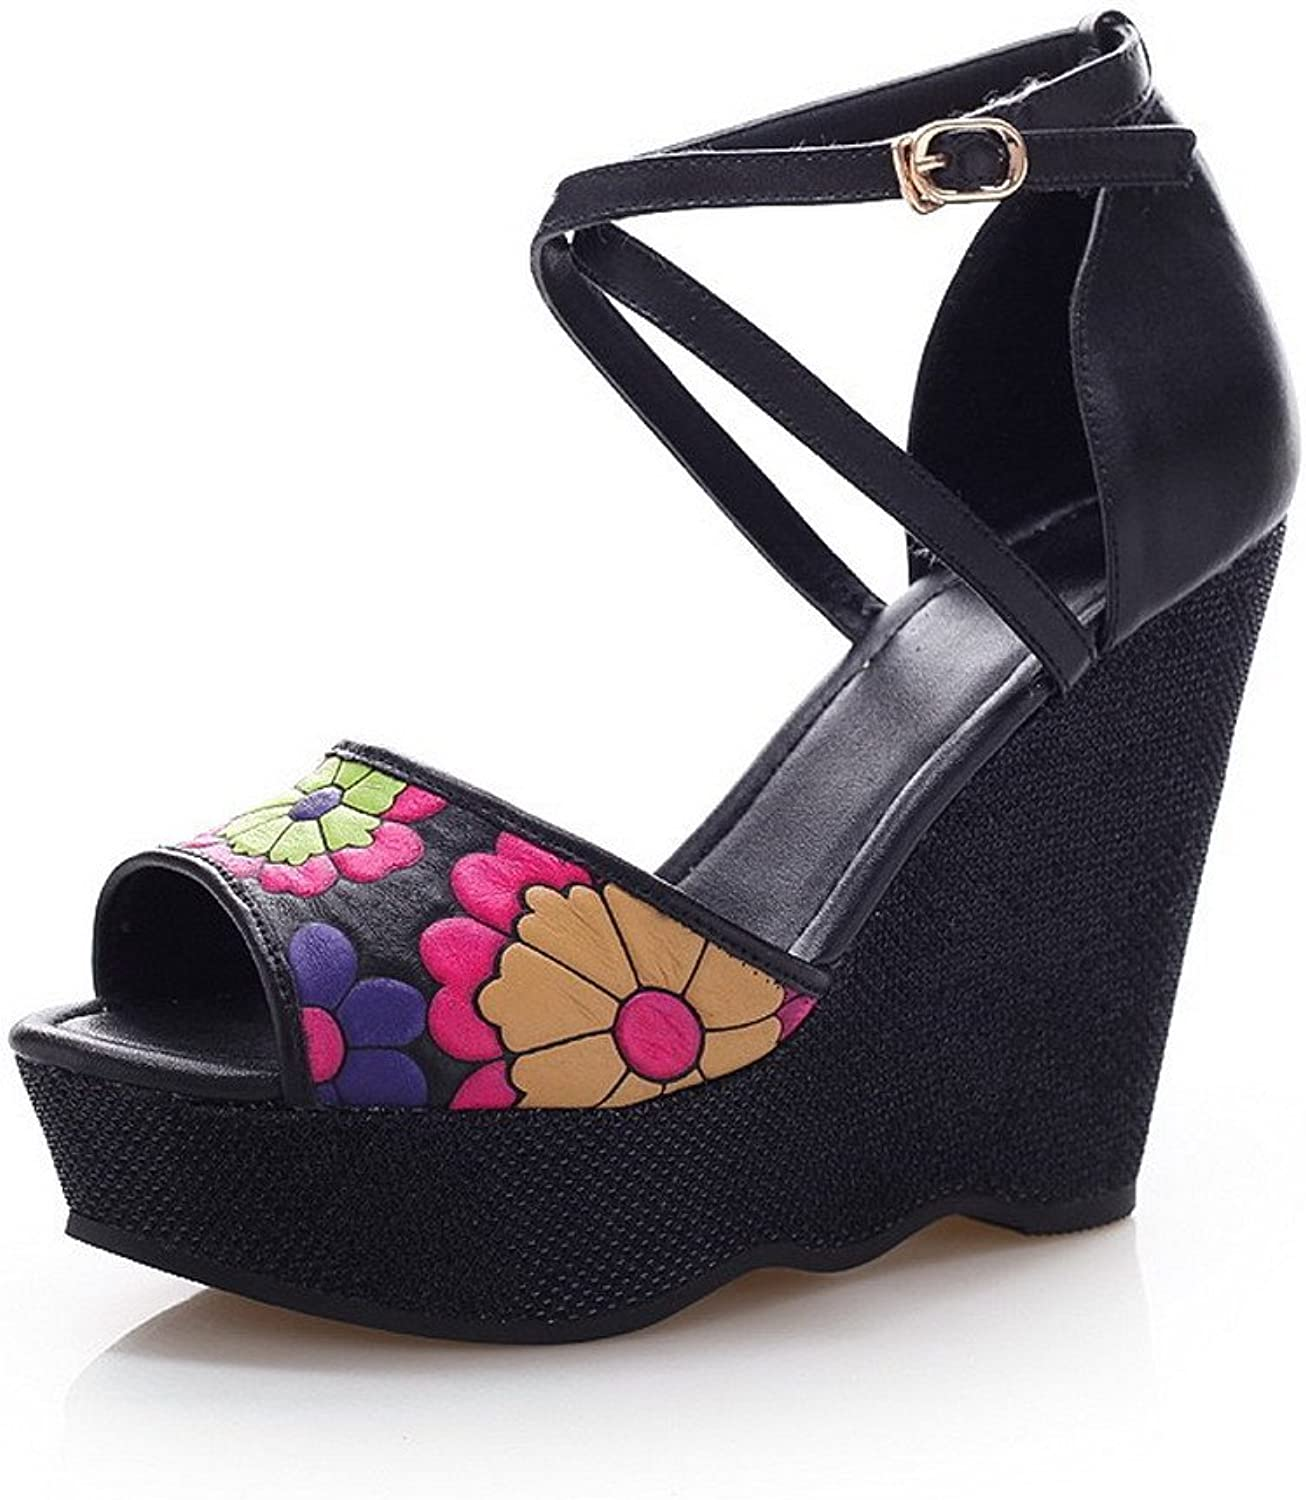 WeiPoot Women Open Toe High Heel Wedge Pig Skin Soft Material Assorted colors Sandals, Black, 7.5 B(M) US